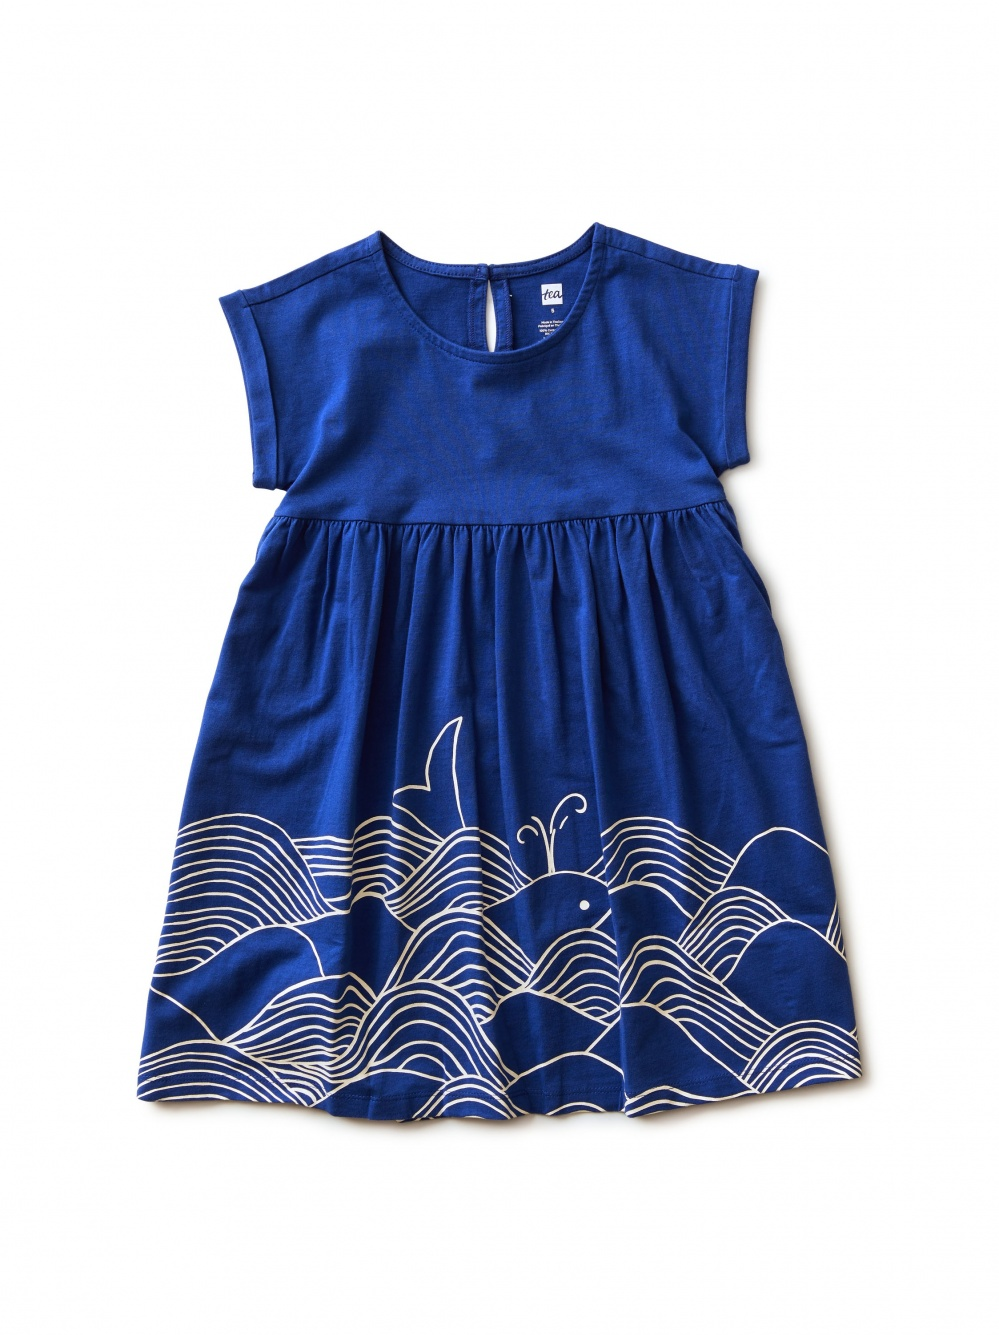 Minoan Whale Graphic Dress